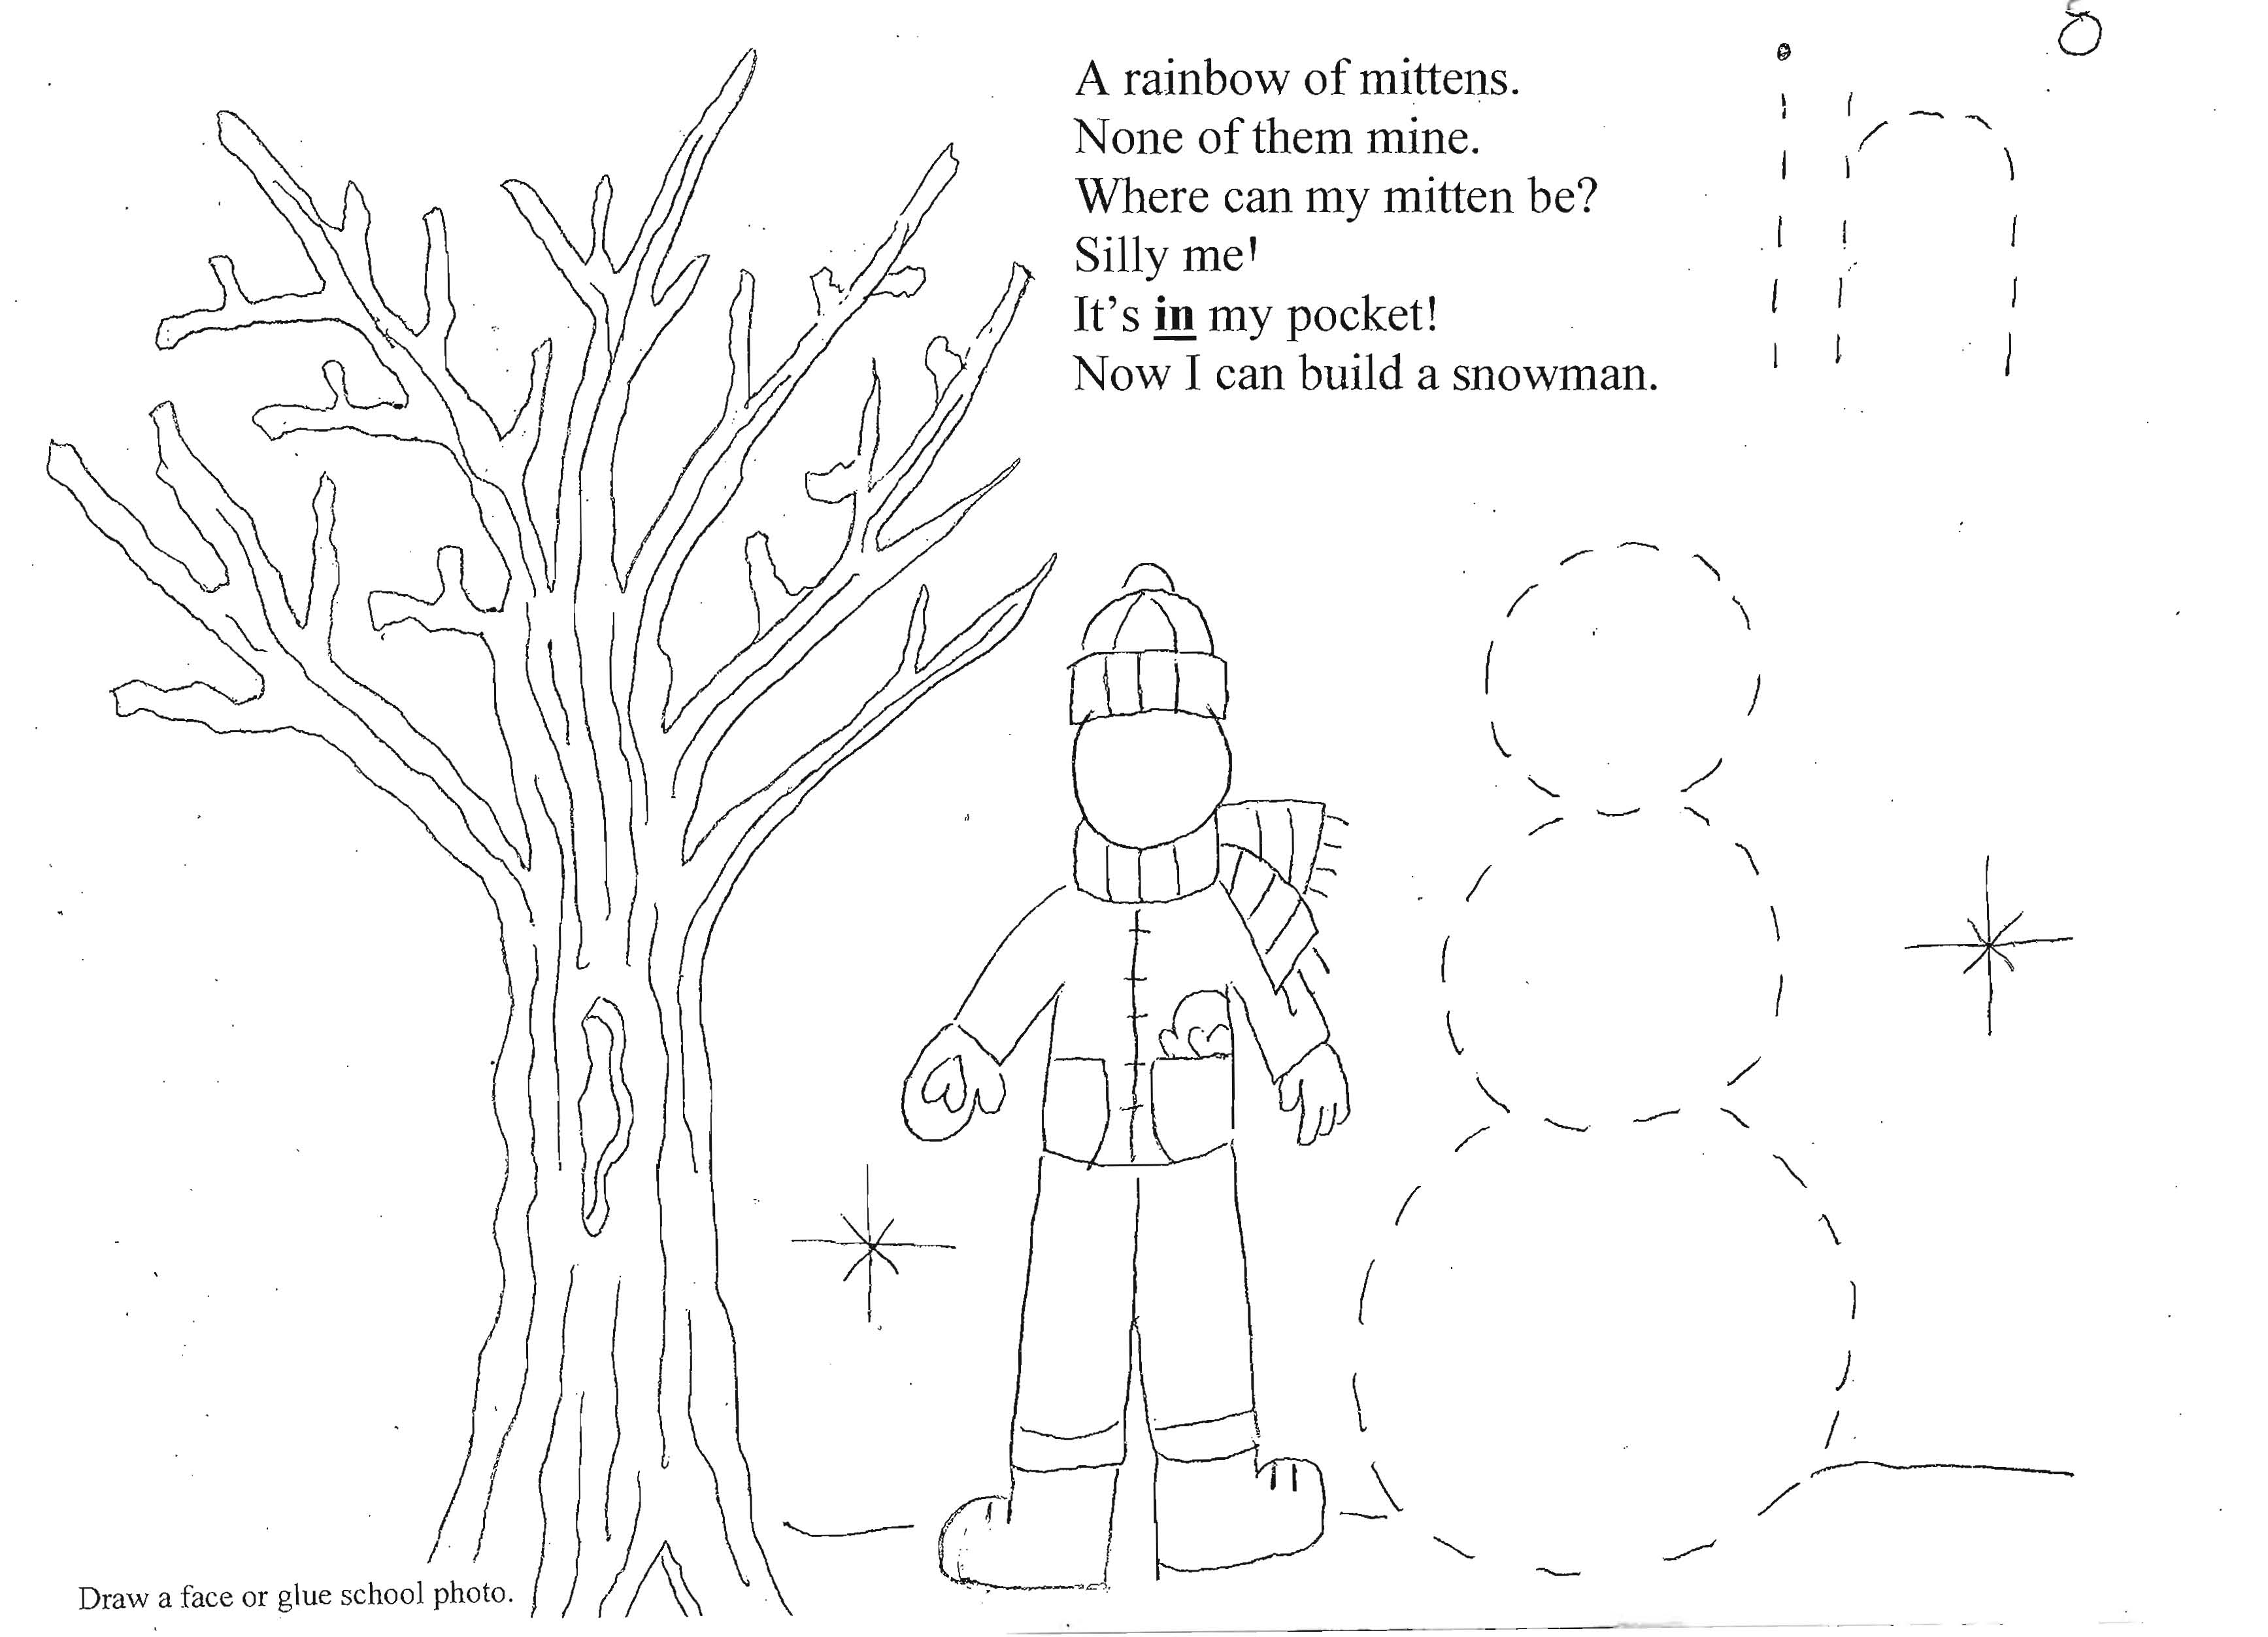 FREE common core lessons for kindergarten and first grade, mitten activities, Daily 5 activities for December, Daily 5 word work activities, mitten lessons, color word activities, easy readers, color word flashcards, mitten games,